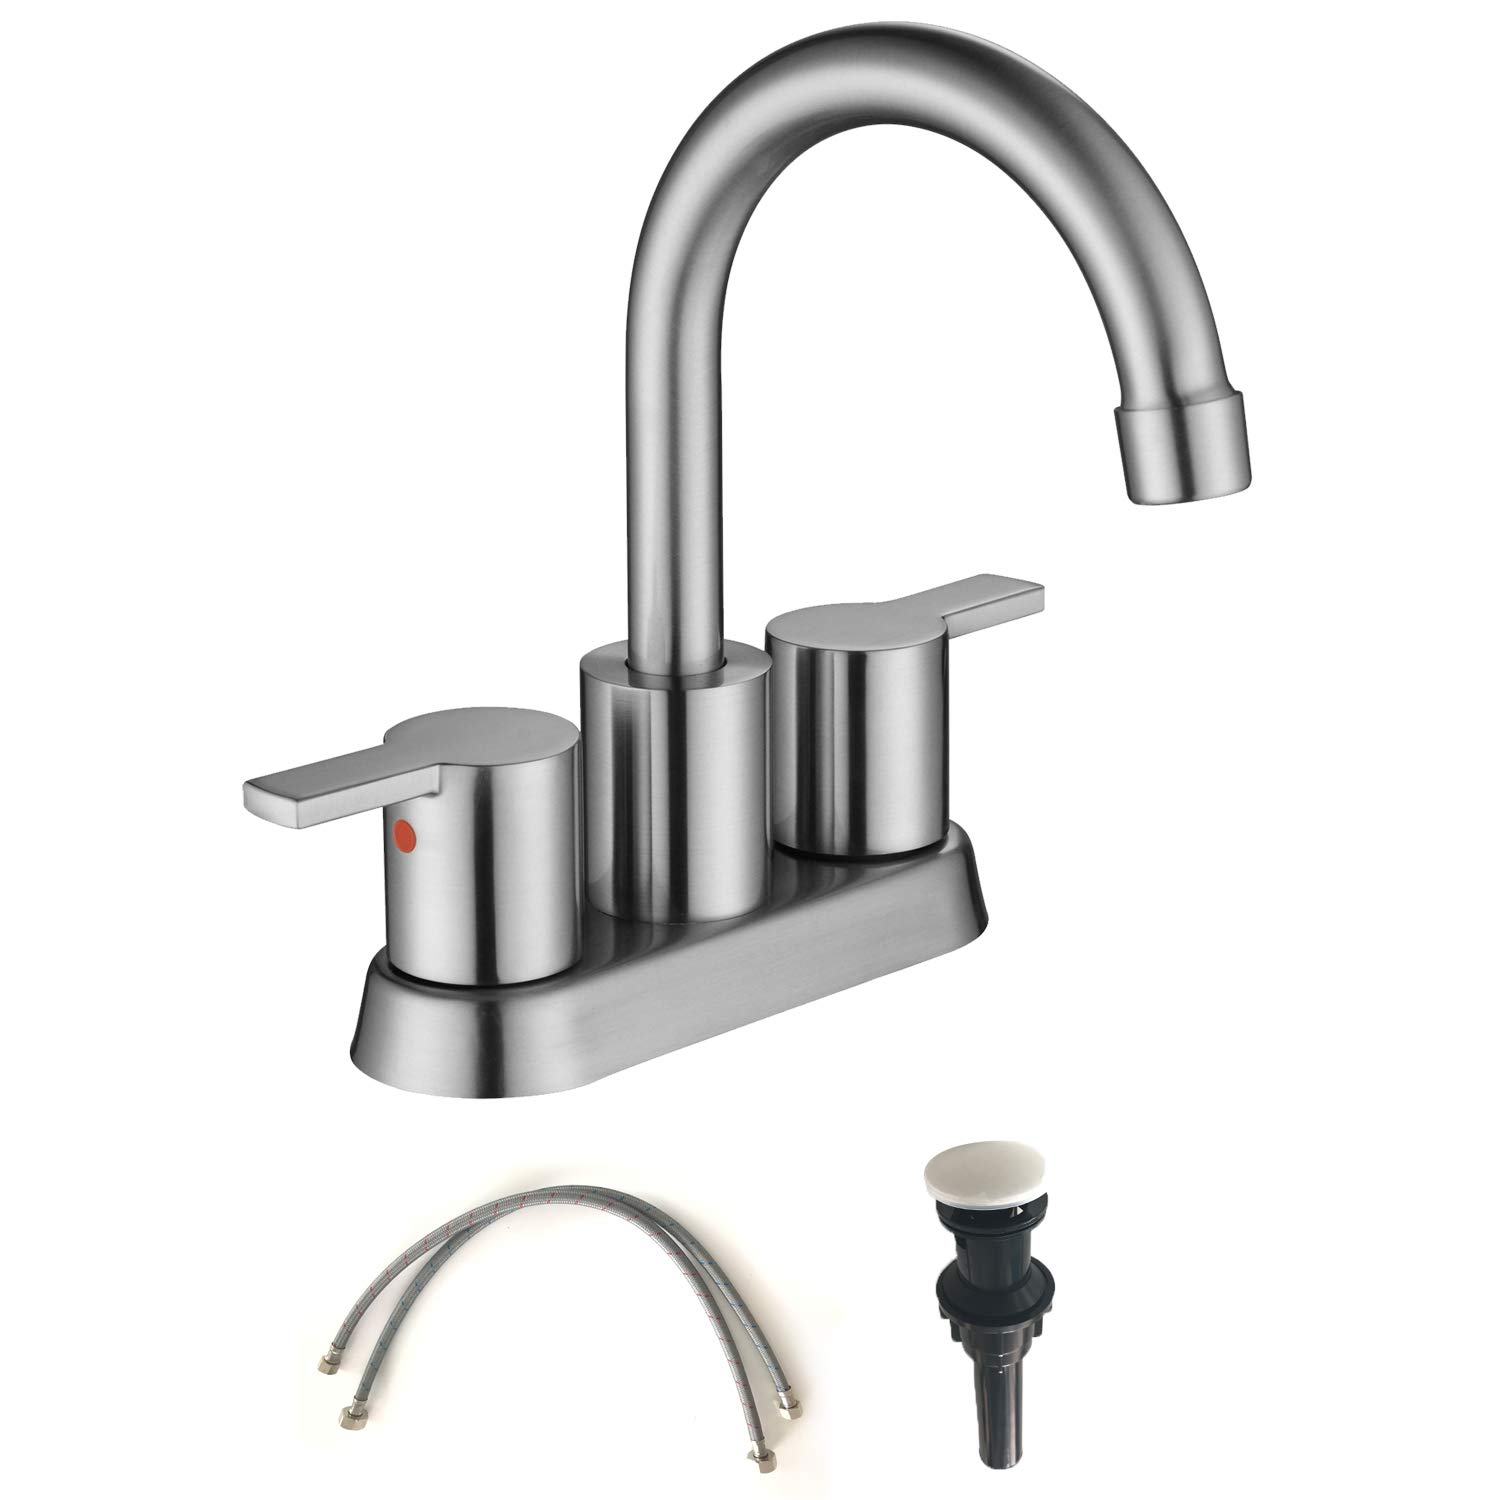 MOWA MBF15-9 Two-Handle Lavatory Brushed Nickel Faucet Lead-free cUPC Mixer Bathroom Vanity Sink Faucet Utility Laundry Faucet